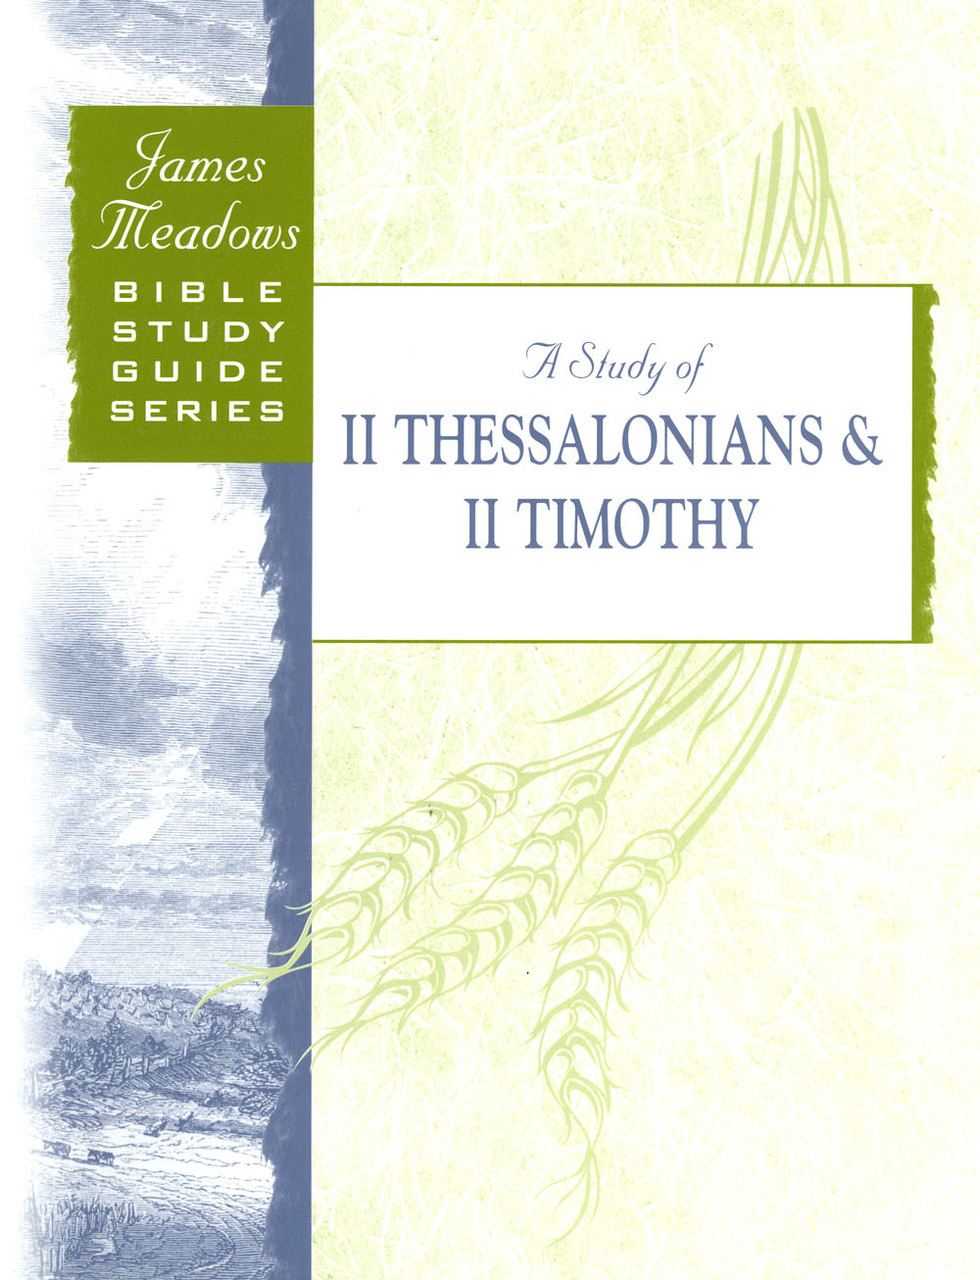 Bible Study Guide Series A Study of II Thessalonians & II Timothy